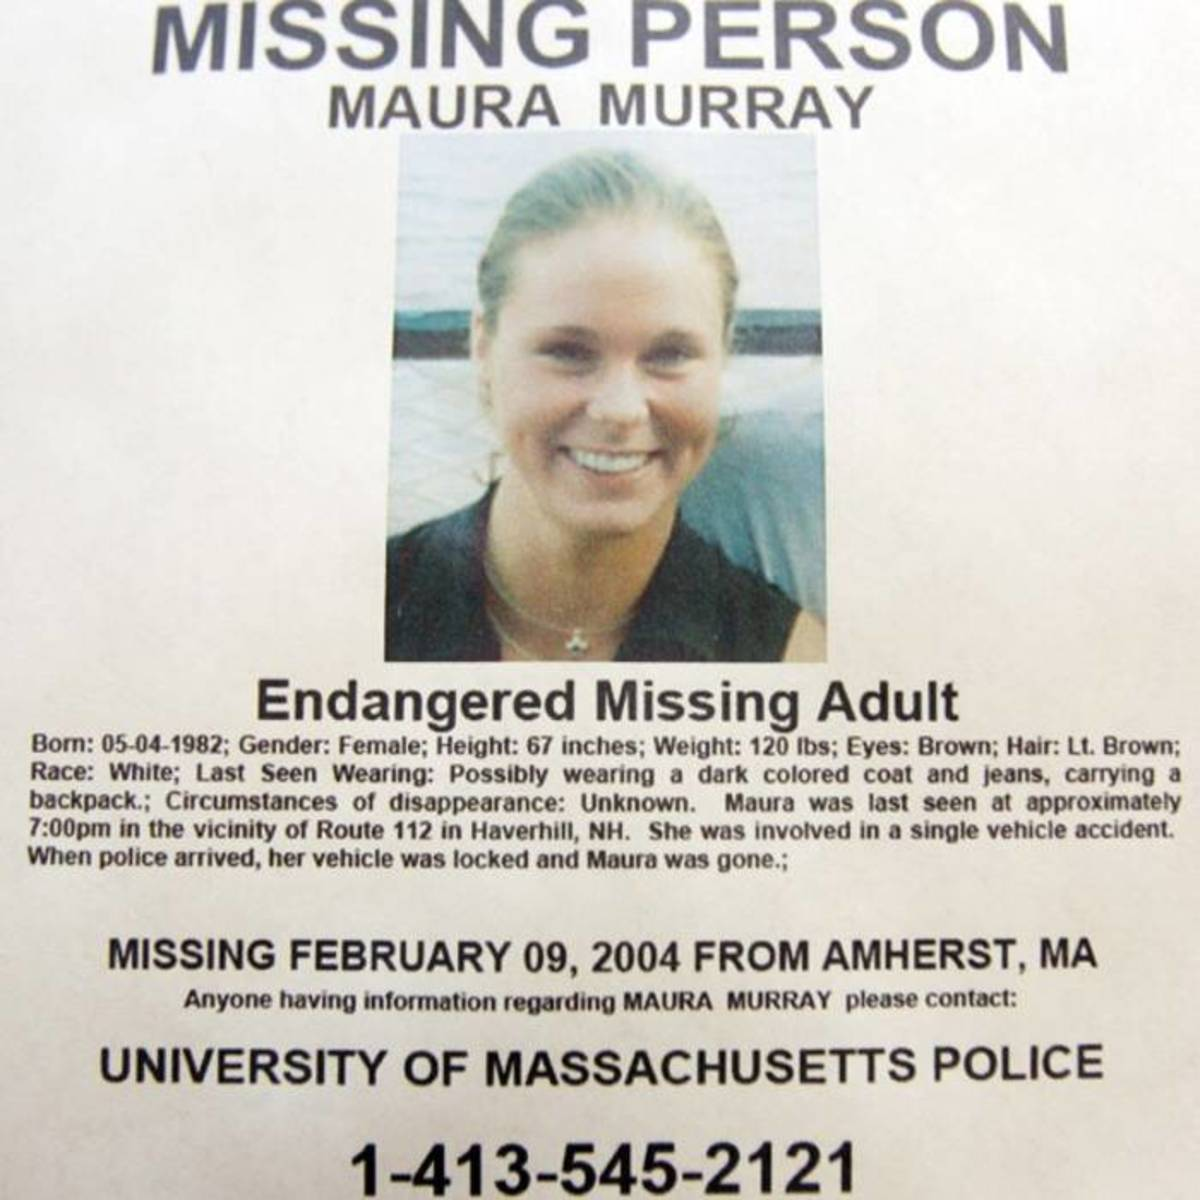 Maura Murray's missing person poster.